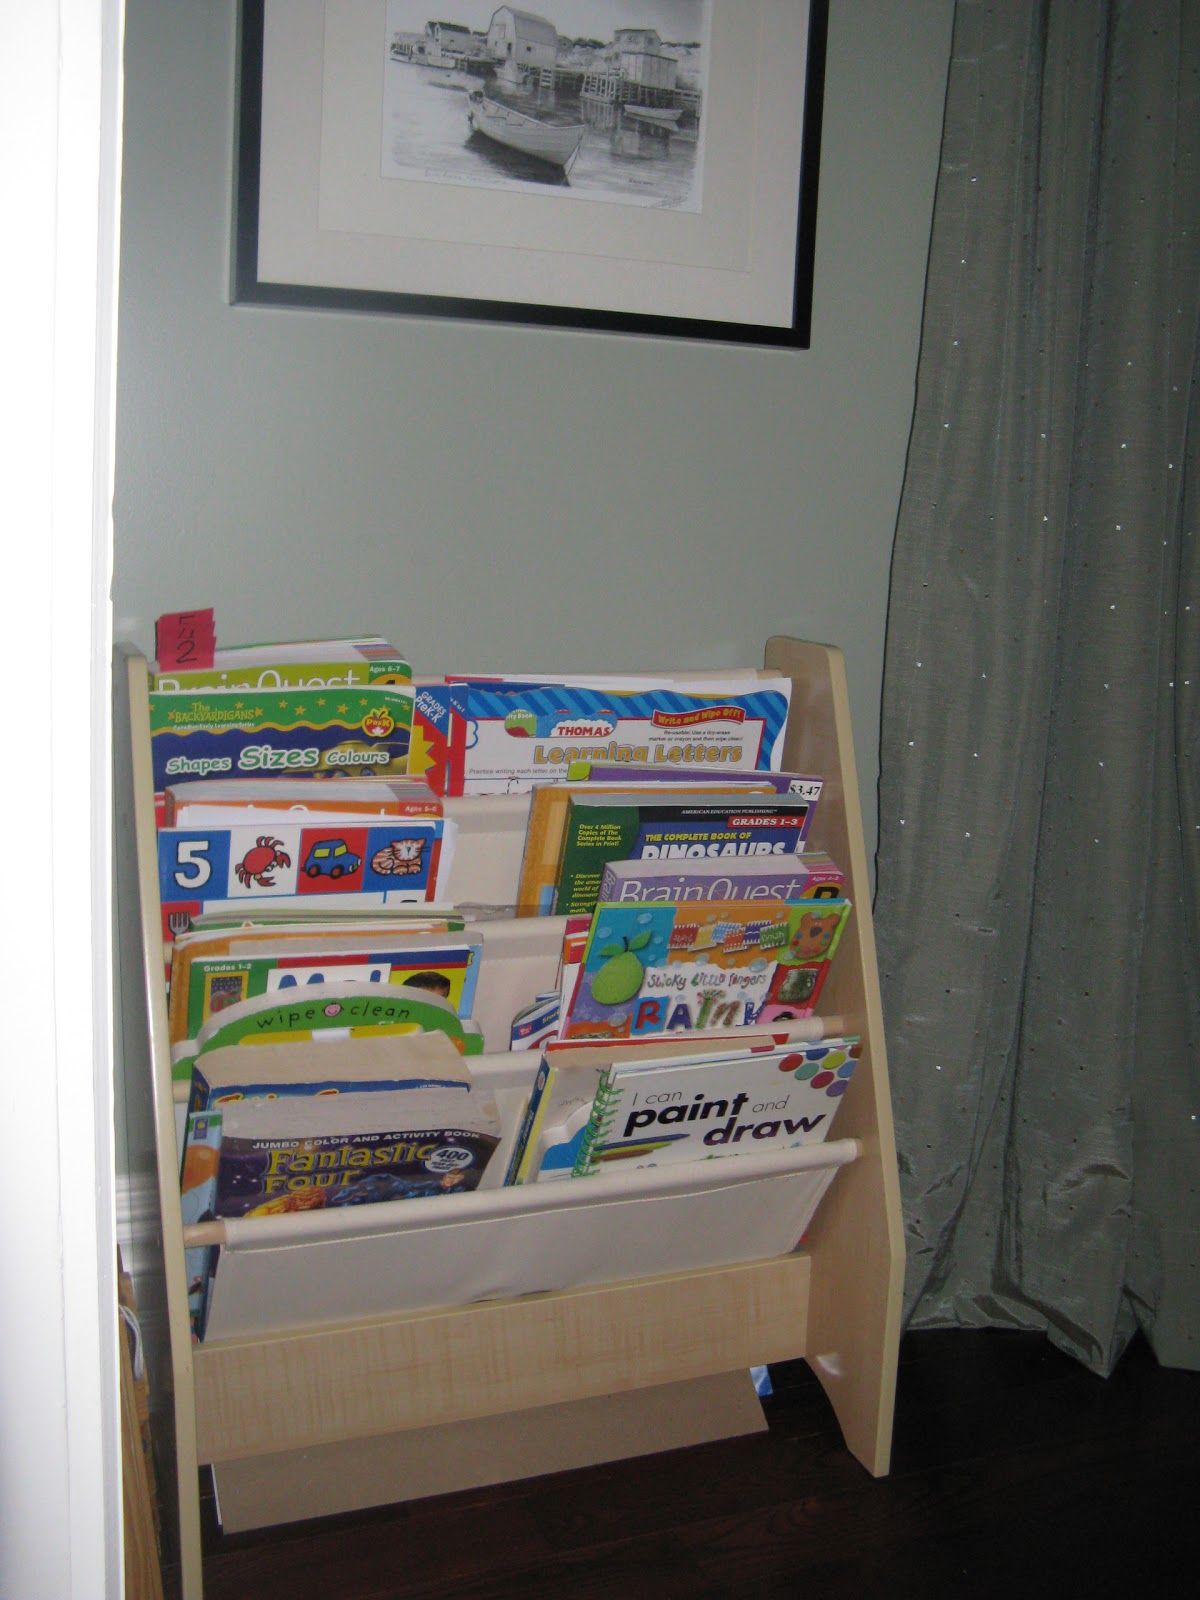 This Shelf Is From Toys R Us, And We Use It In The Dining Room For Books,  Colouring Books And Various Other Things. This Has Been So Convenient In A  Tight ...